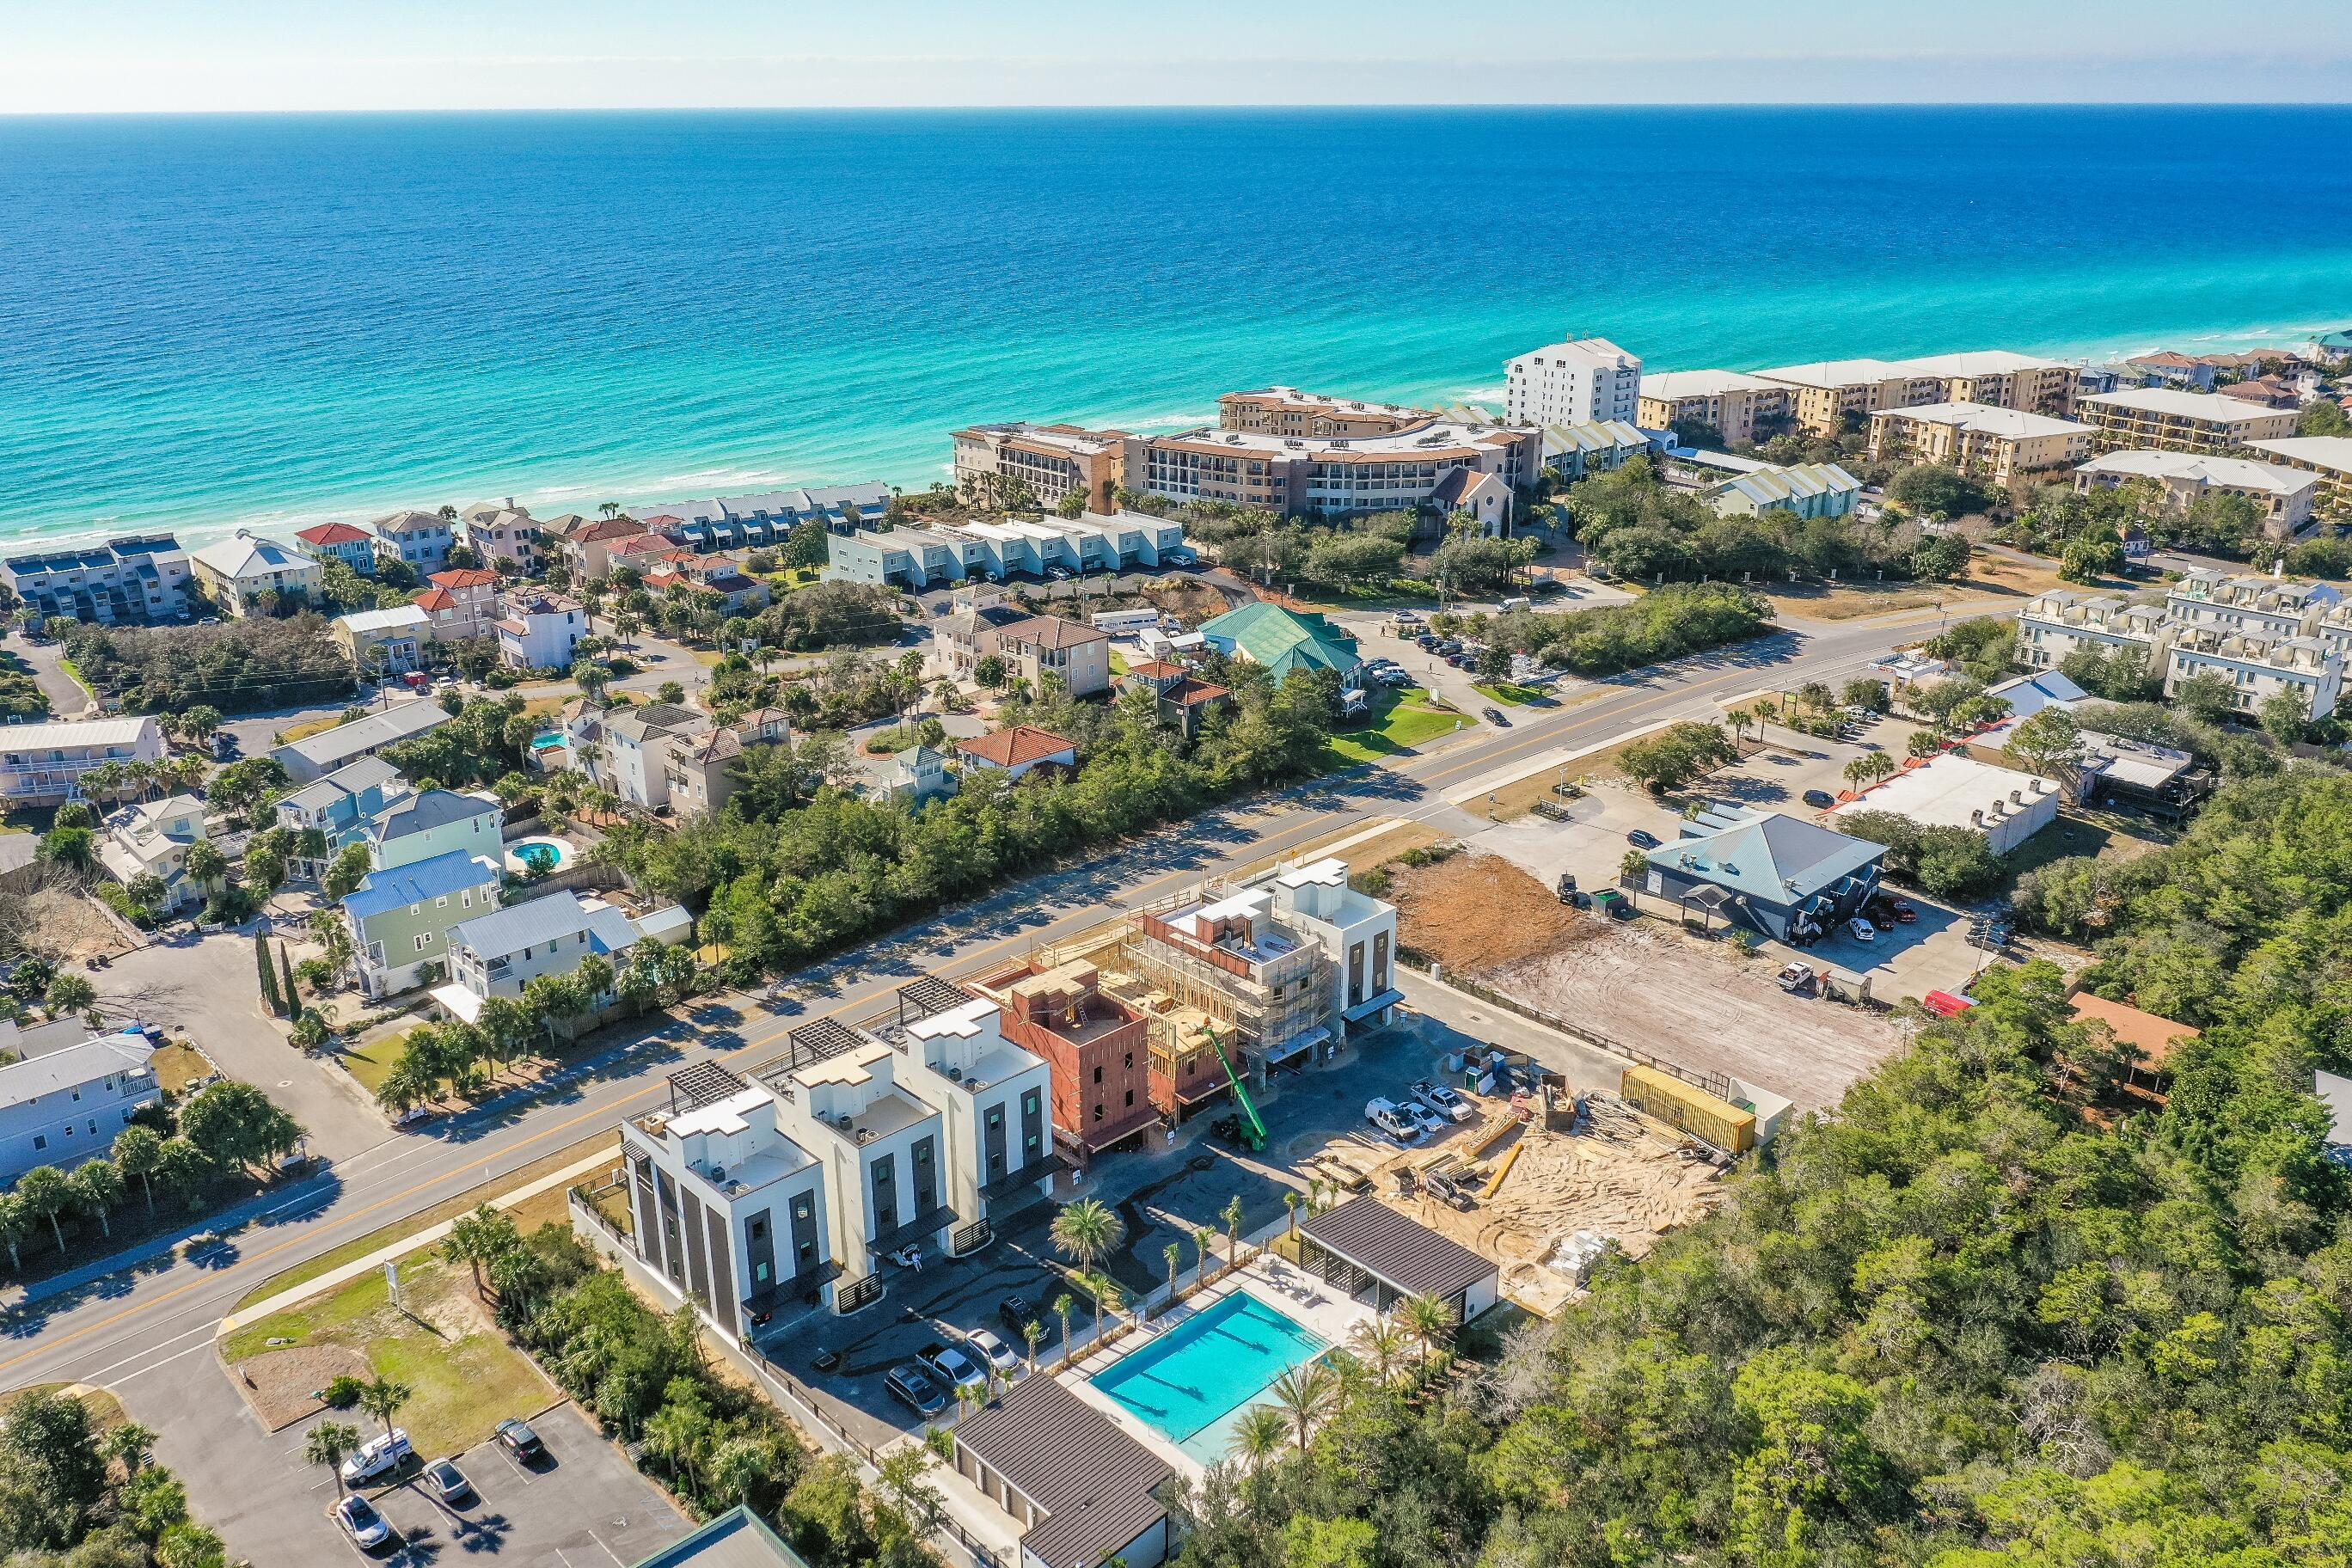 ONE OF THE LAST TWO UNITS AT THE CREST - Completion September 2021. This unique unit boasts TWO rooftop terraces providing East & West Views of the Gulf from Destin to Panama City.  The Crest offers stunning, contemporary architecture and is conveniently located in Blue Mountain Beach on one of the highest points on Hwy 30A, the view from the rooftop terrace is simply stunning! This 3500 sq ft home boasts 5 bedrooms, 5.5 baths and two spacious living areas. The Crest affords its owner quality (partial steel) construction along with extra space to enjoy those family days at the beach without the paying the price of gulf-front! A few of the many amenities include a community pool, poolside cabanas, separate storage for each unit, a golf cart for each owner...all in a gated community.